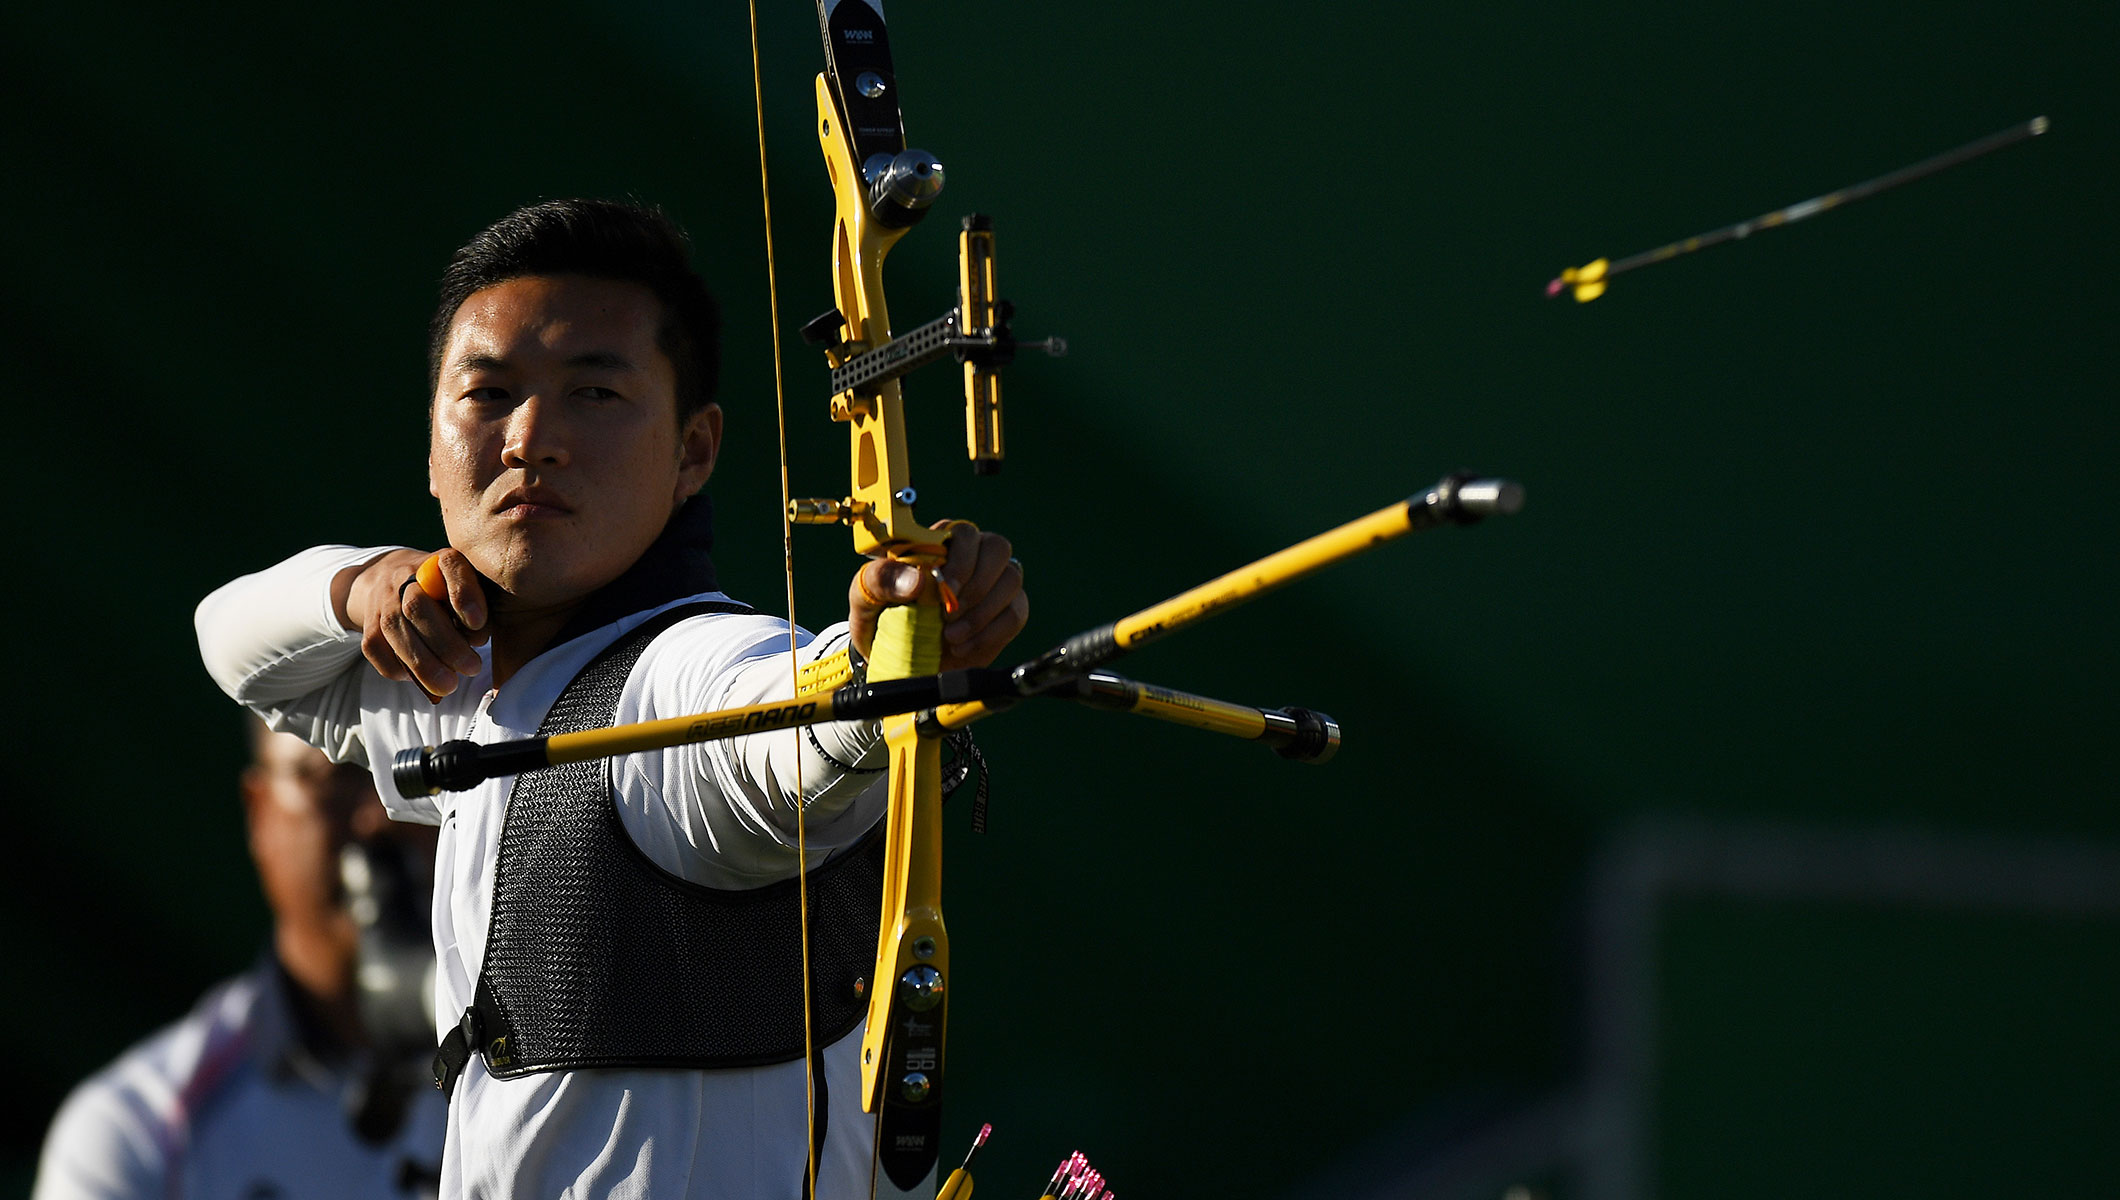 Ku wins men's individual gold to extend Korean archery streak